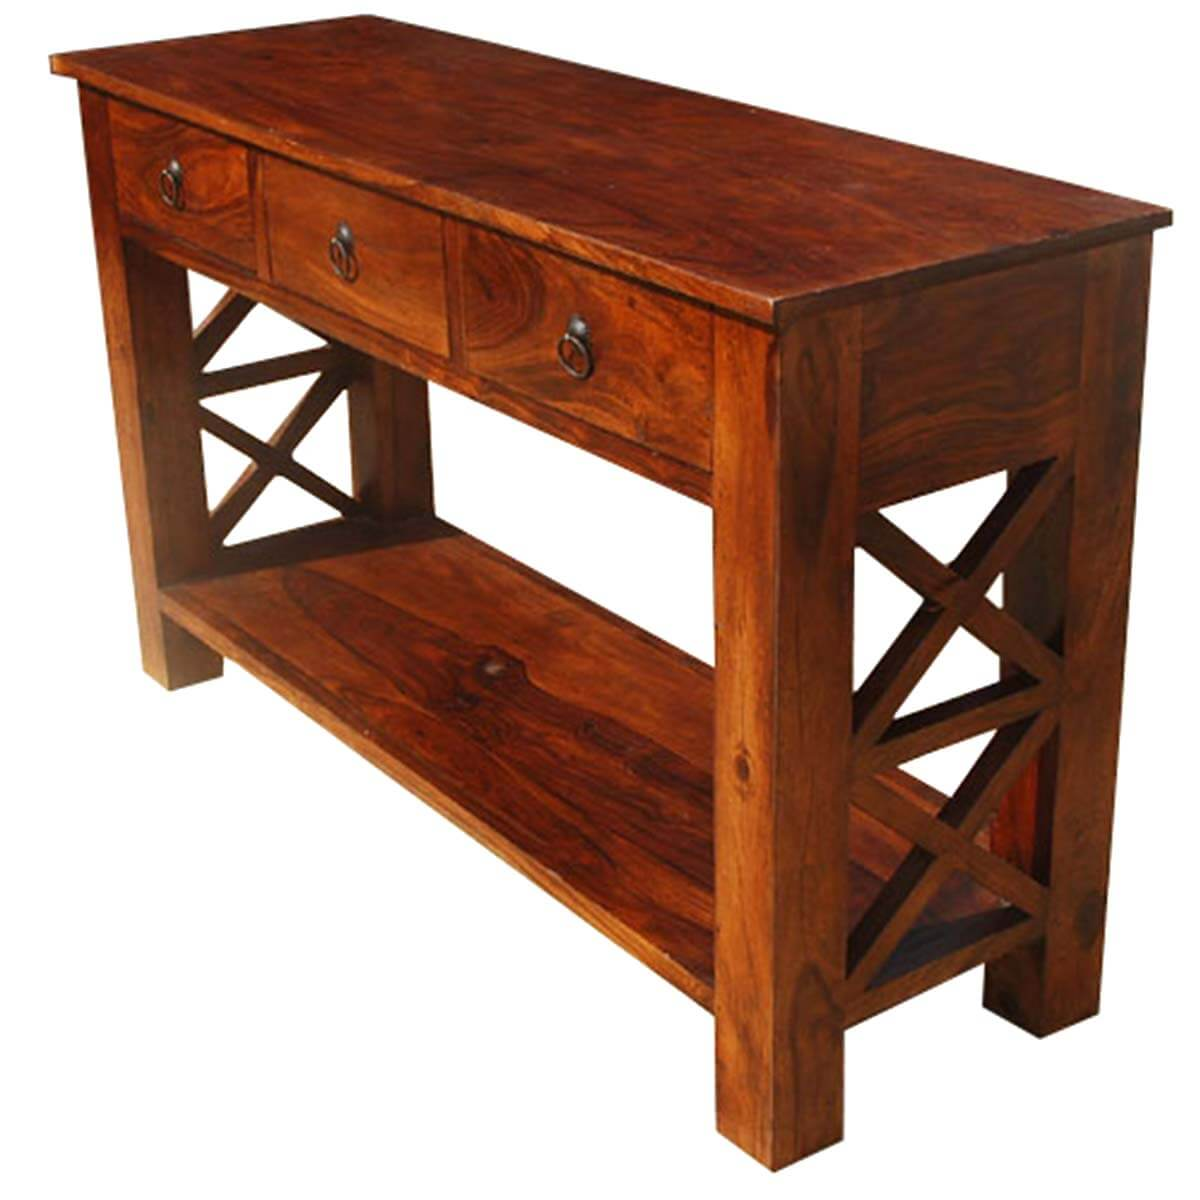 Solid wood oklahoma farmhouse console table w storage